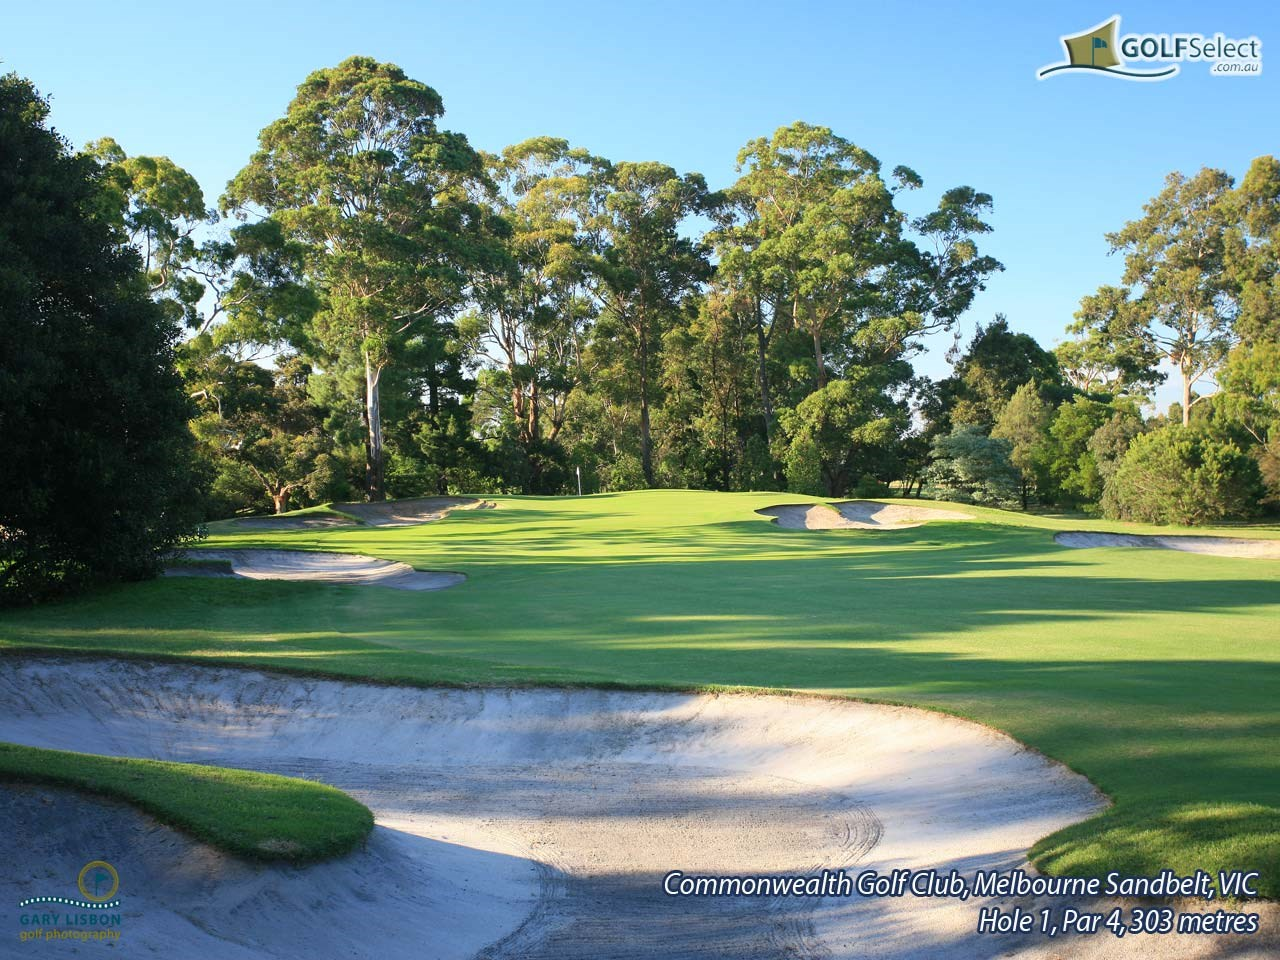 Commonwealth Golf Club Hole 1, Par 4, 303 metres